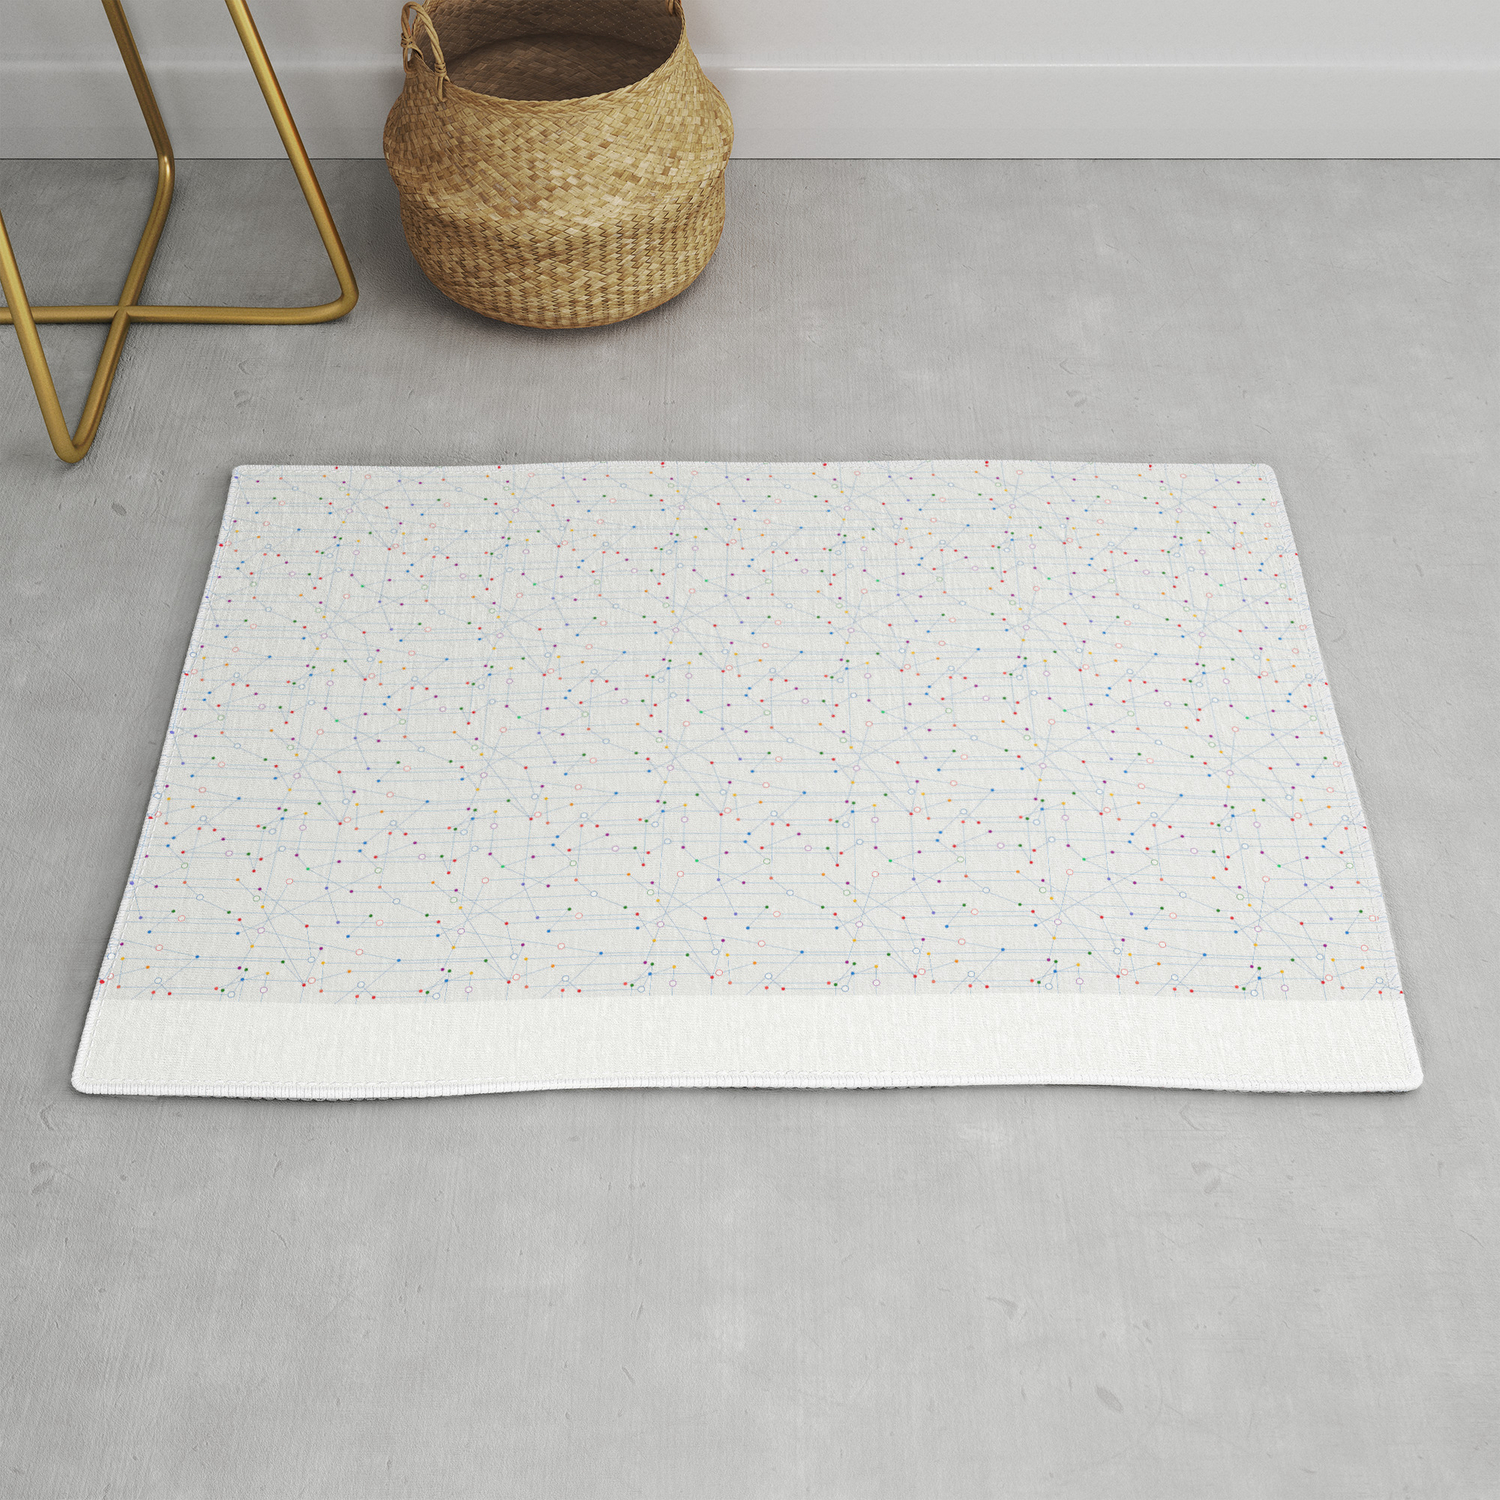 The Network Rug By Rceeh Society6